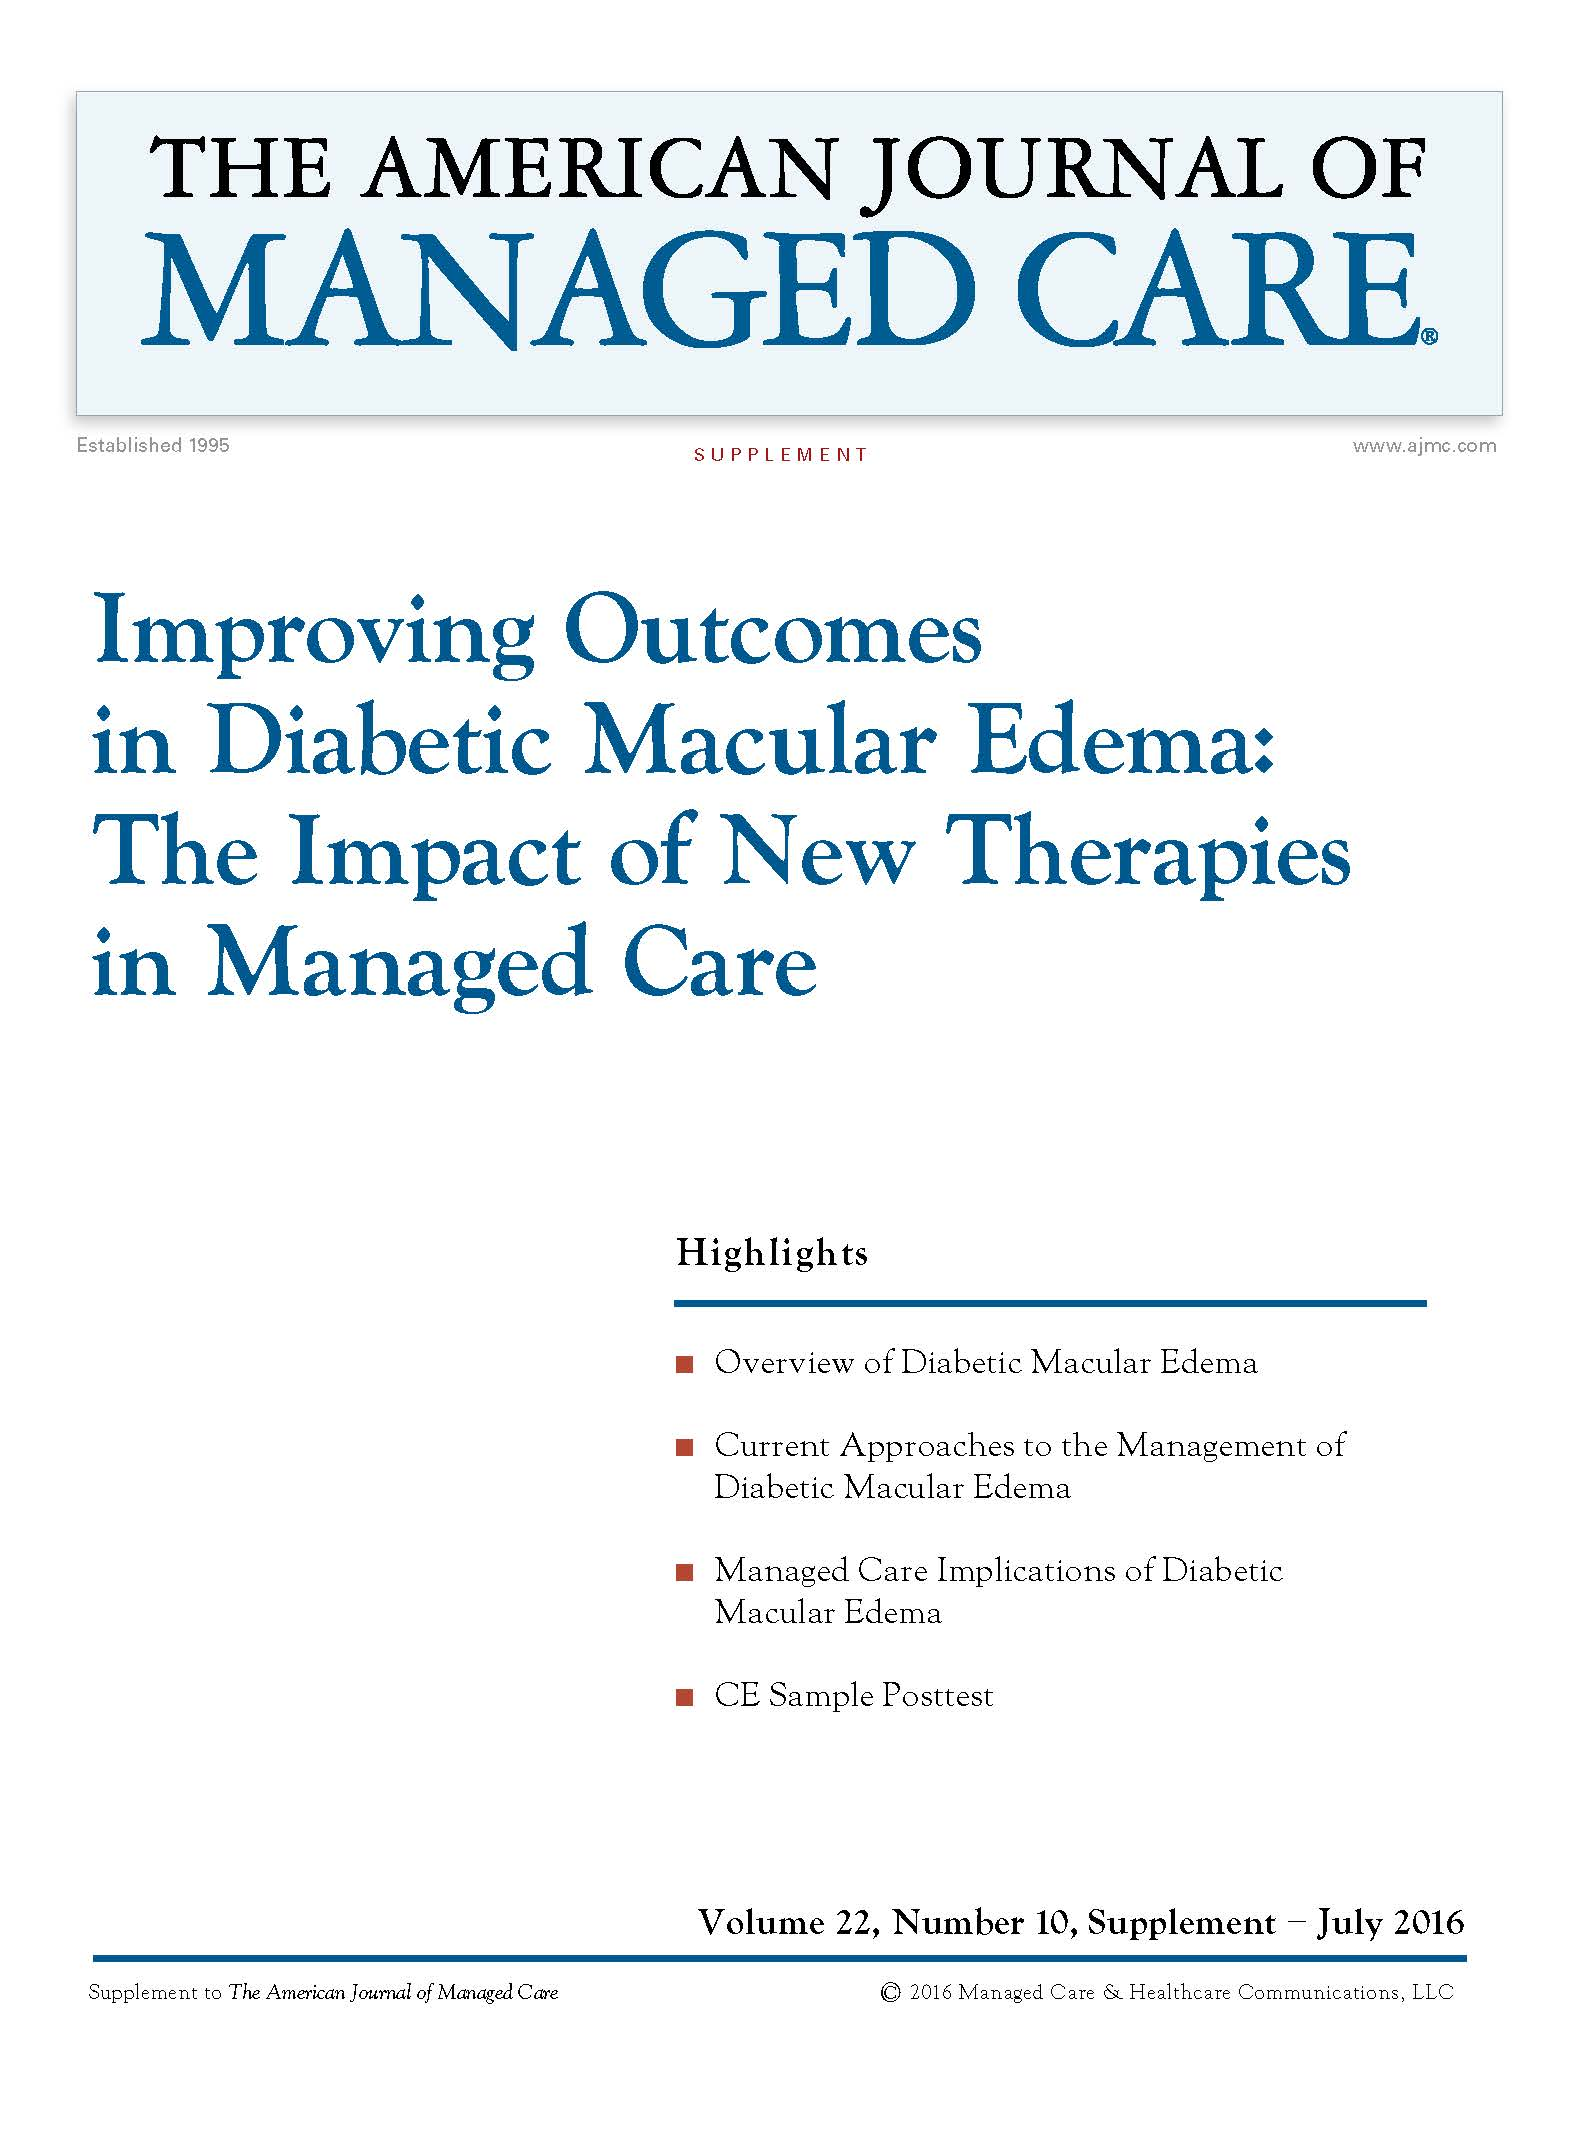 Improving Outcomes in Diabetic Macular Edema: The Impact of New Therapies in Managed Care